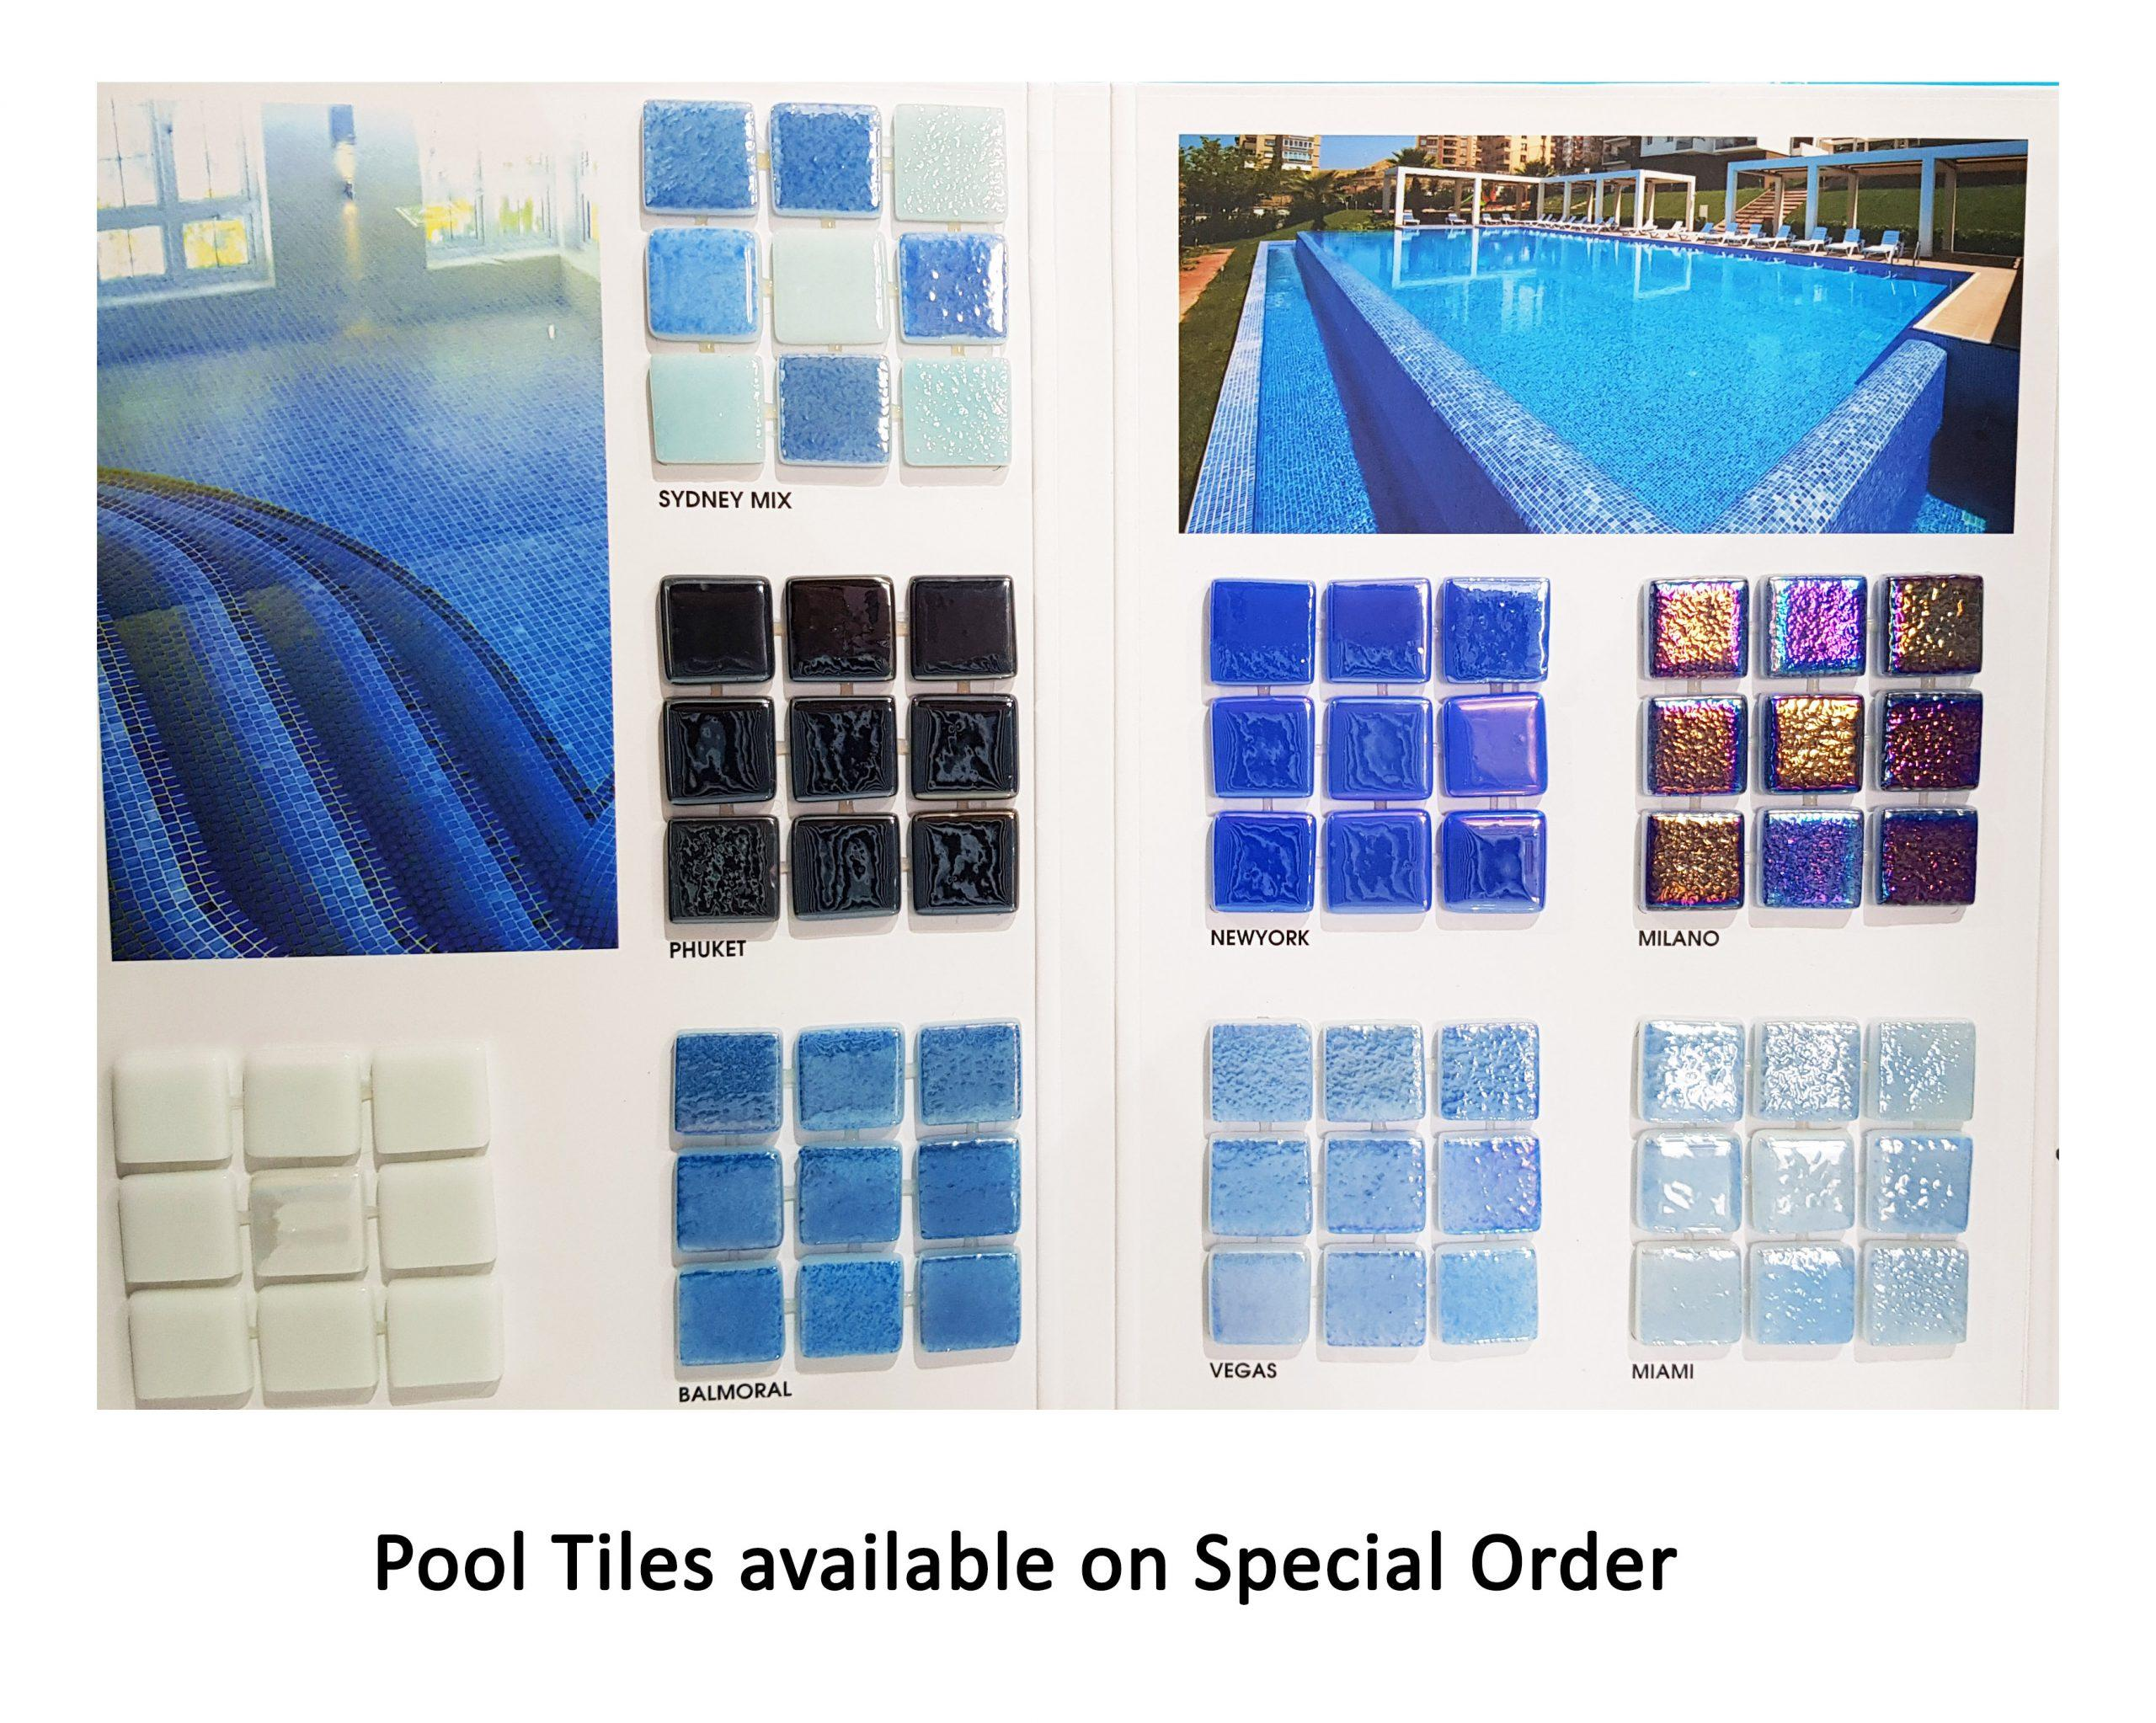 Pool tiles – Special order